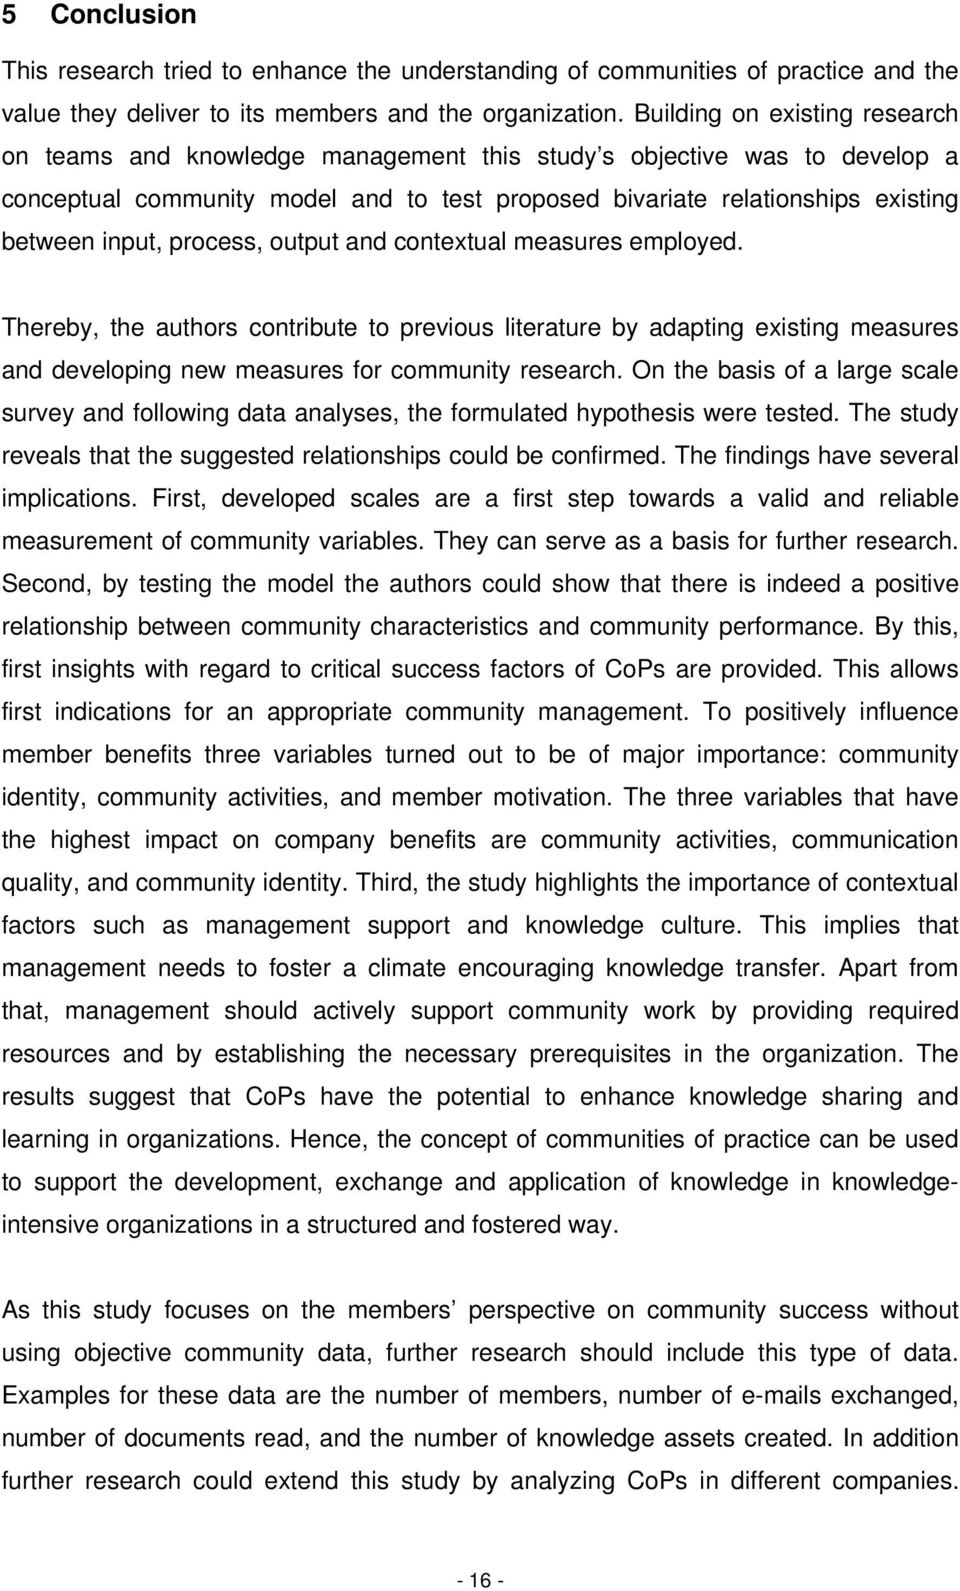 process, output and contextual measures employed. Thereby, the authors contribute to previous literature by adapting existing measures and developing new measures for community research.